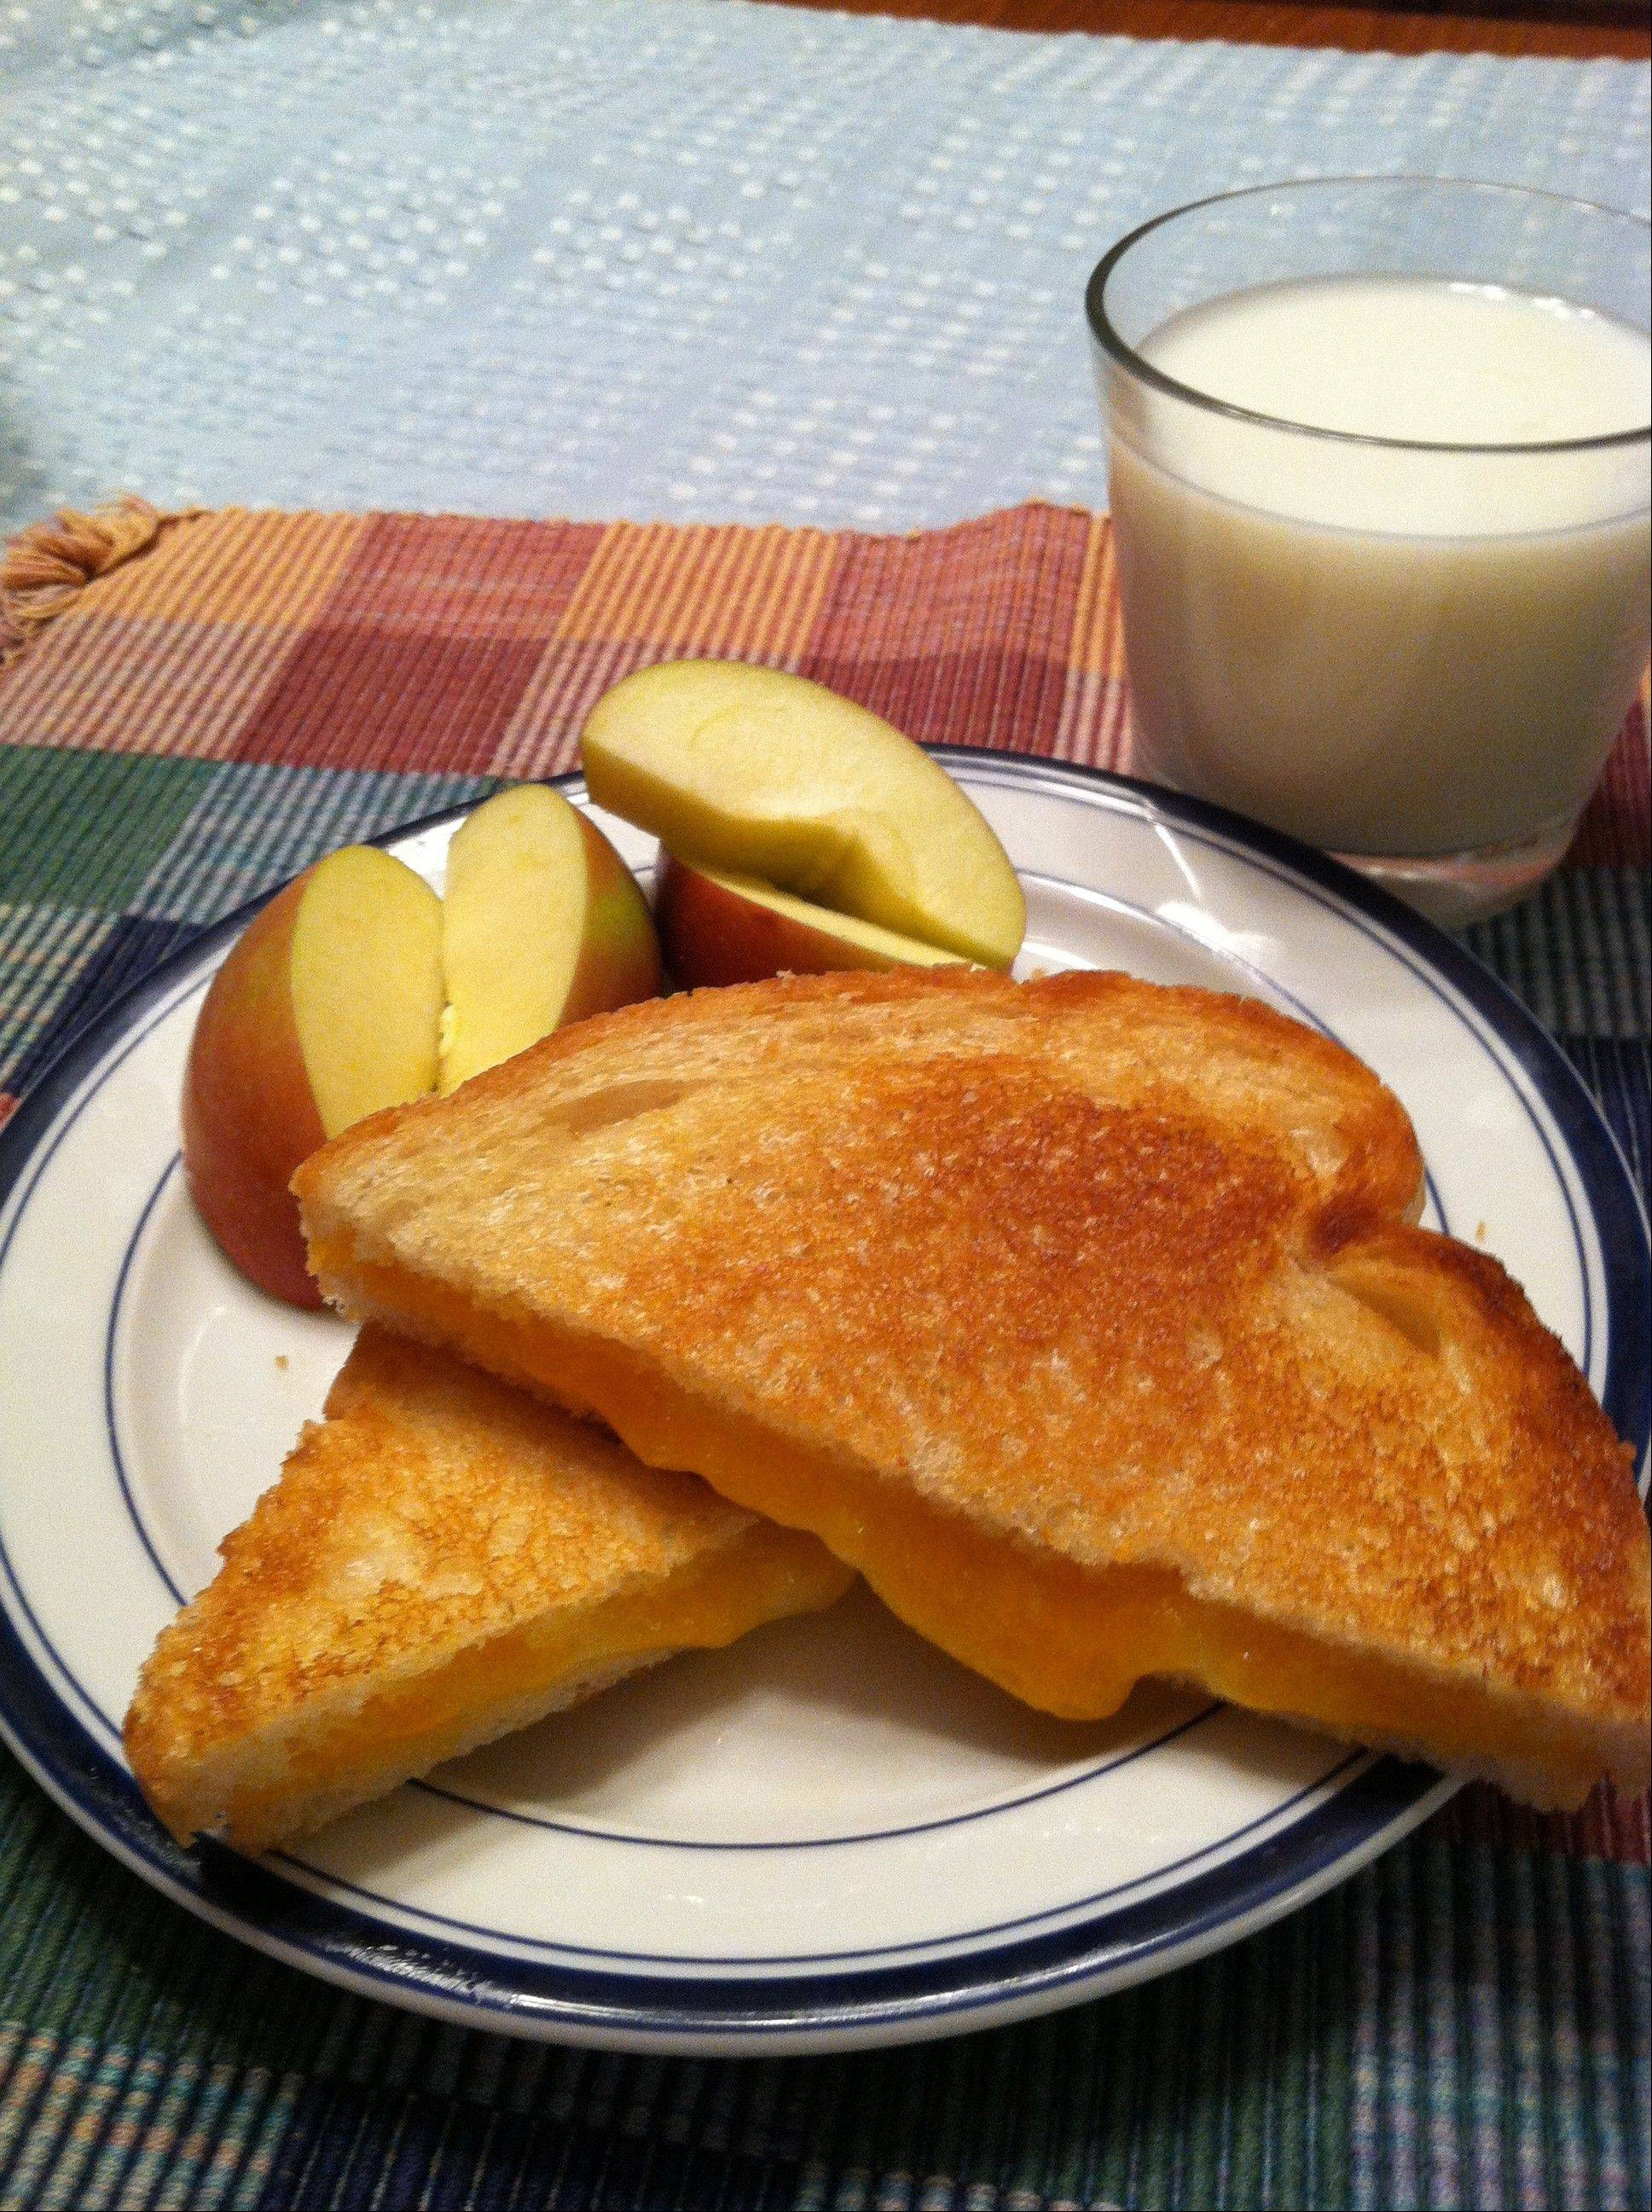 You�re never too old to enjoy a warm, gooey grilled cheese sandwich.